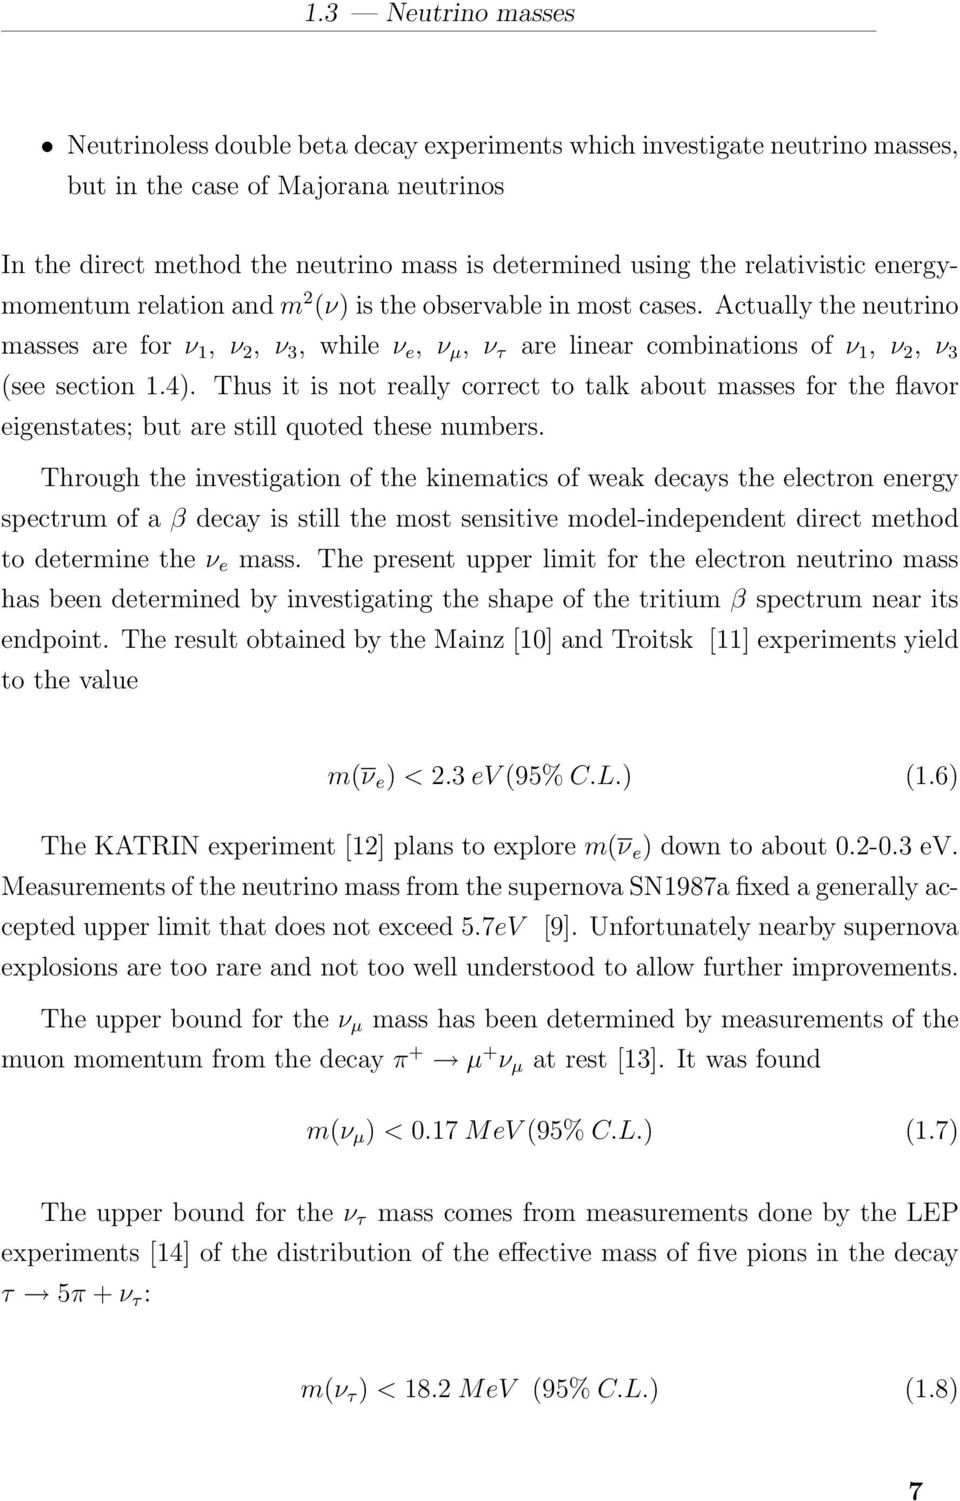 Actually the neutrino masses are for ν 1, ν 2, ν 3, while ν e, ν µ, ν τ are linear combinations of ν 1, ν 2, ν 3 (see section 1.4).